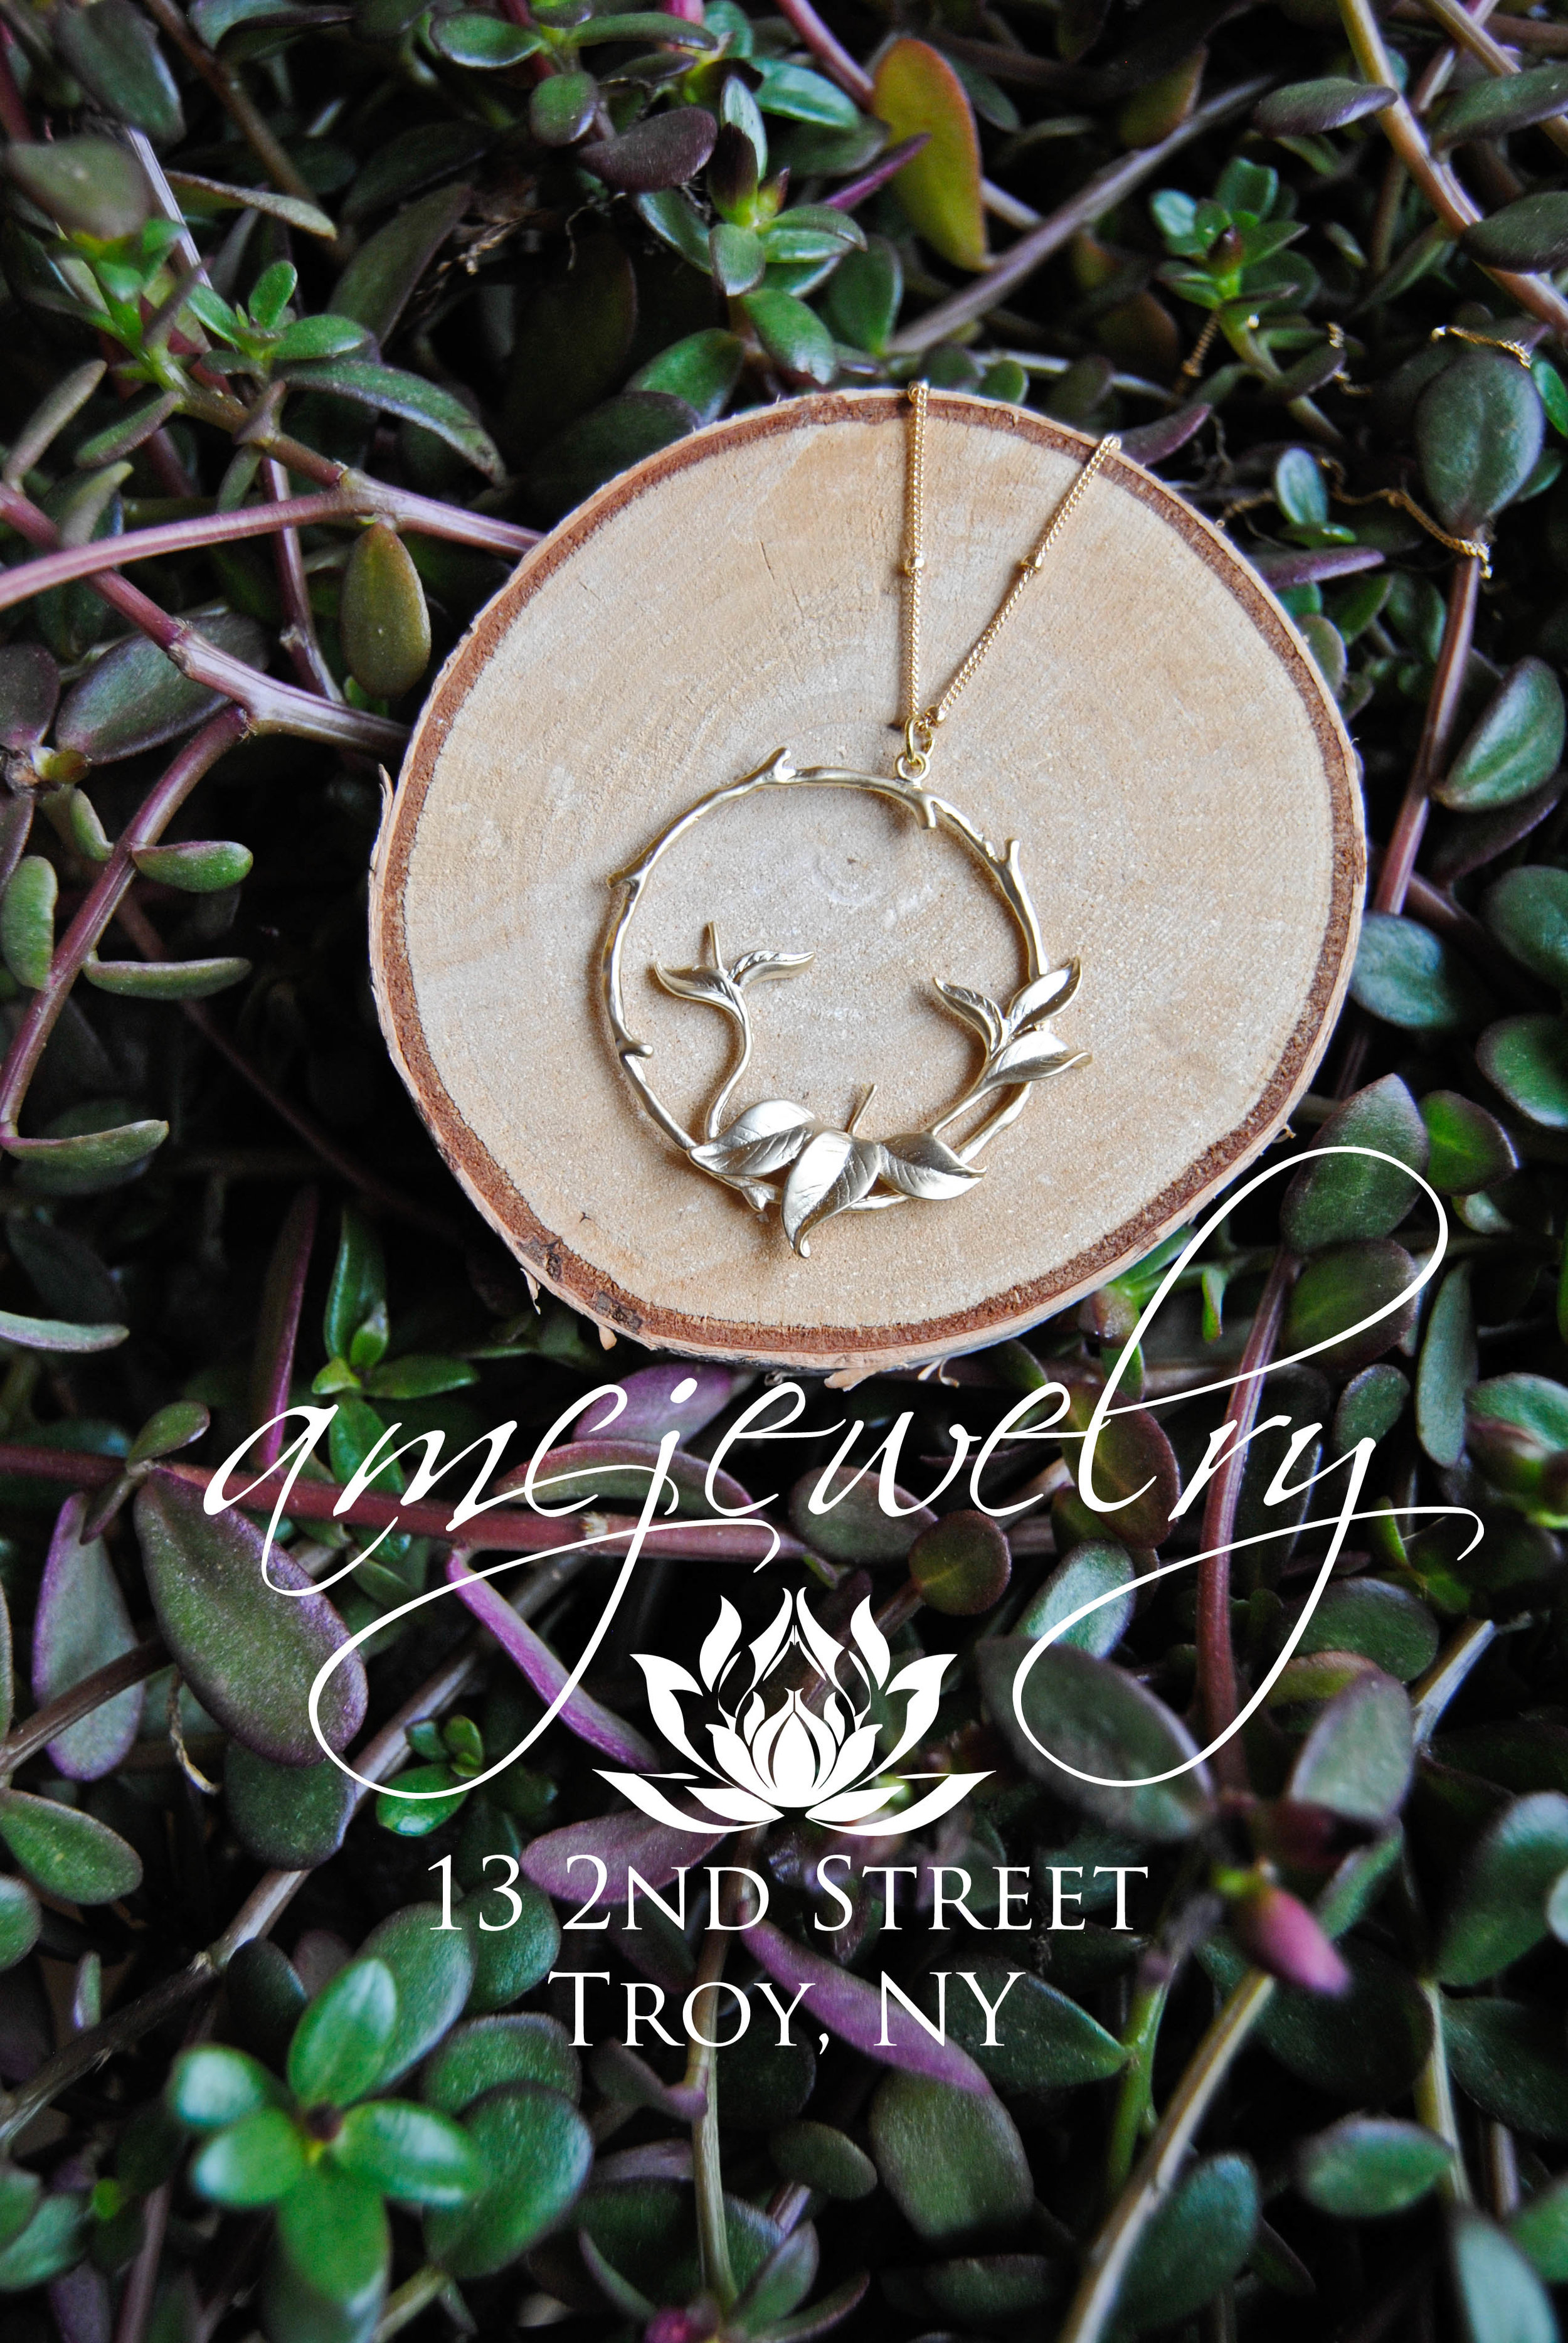 Friday March 3rd 5-7 : One of Our Featured Artists is back for January!! AMCooper Jewelry. They have just opened their first shop in Troy but have been selling at Farmers Markets and Pop Up Events previously.  http://www.amcjewelry.com